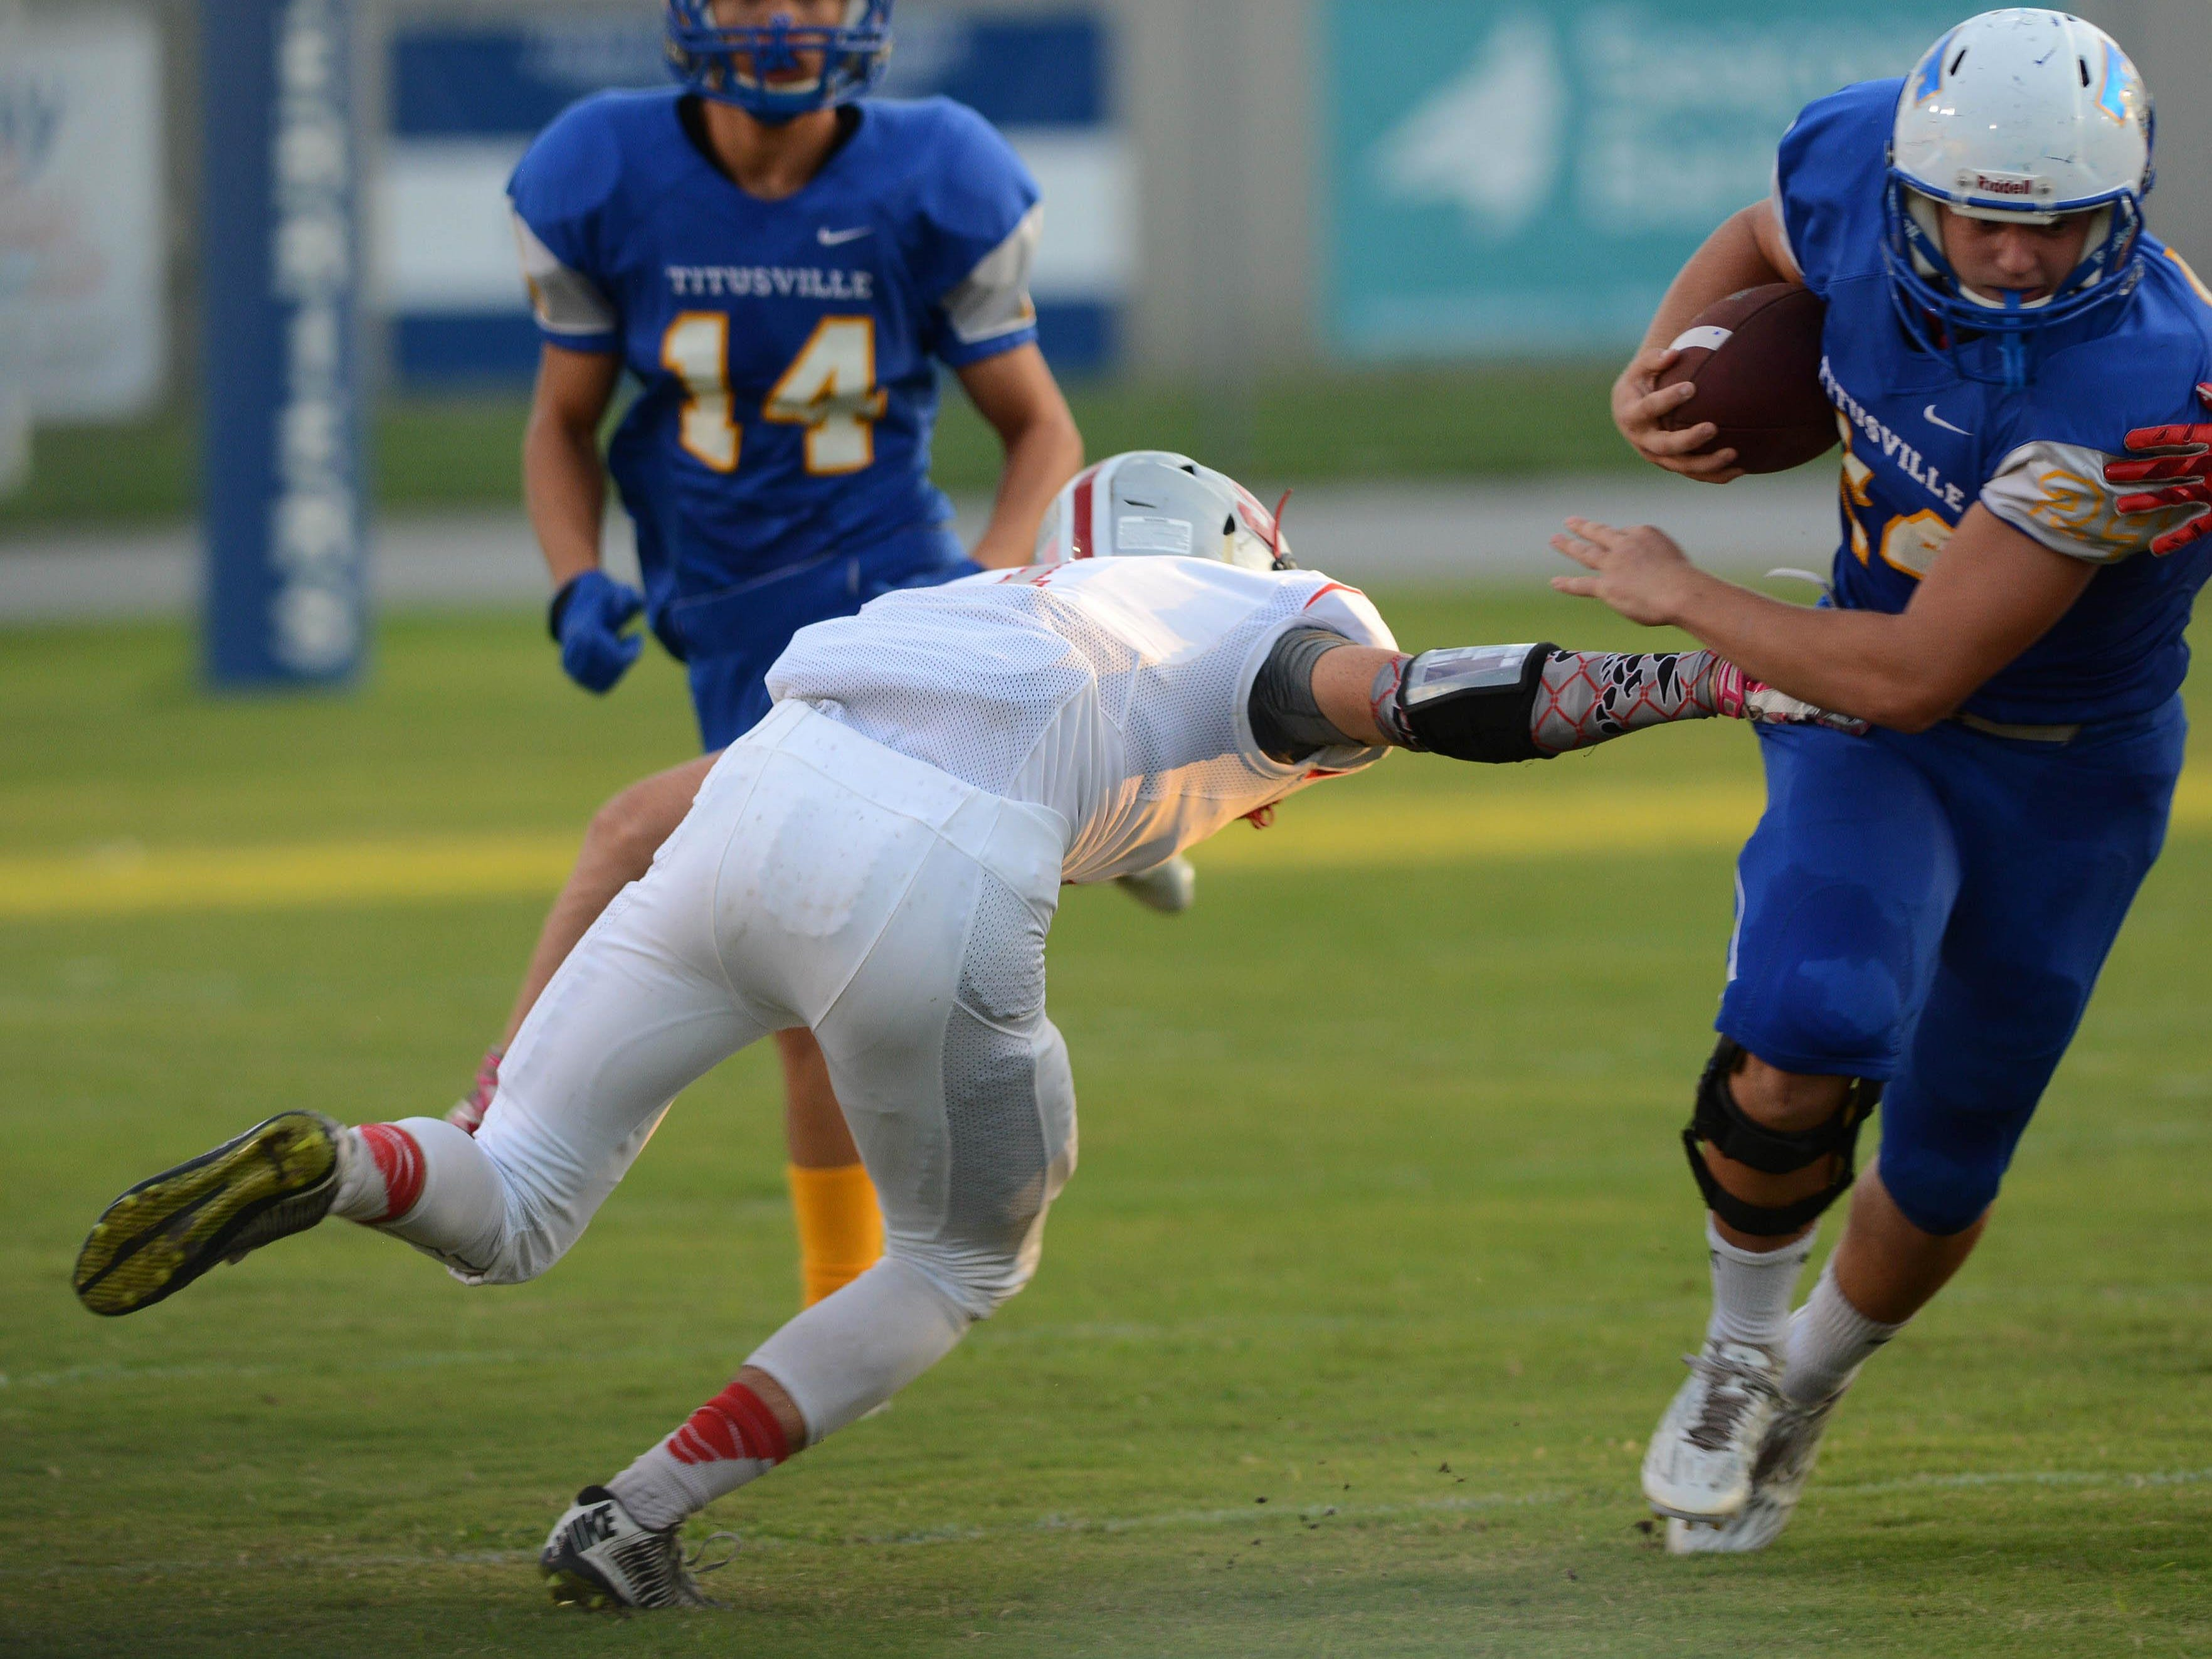 Titusville's Jacob Farris (24) avoids the tackle of Satellite's Alex Nicks during Friday's game in Titusville.